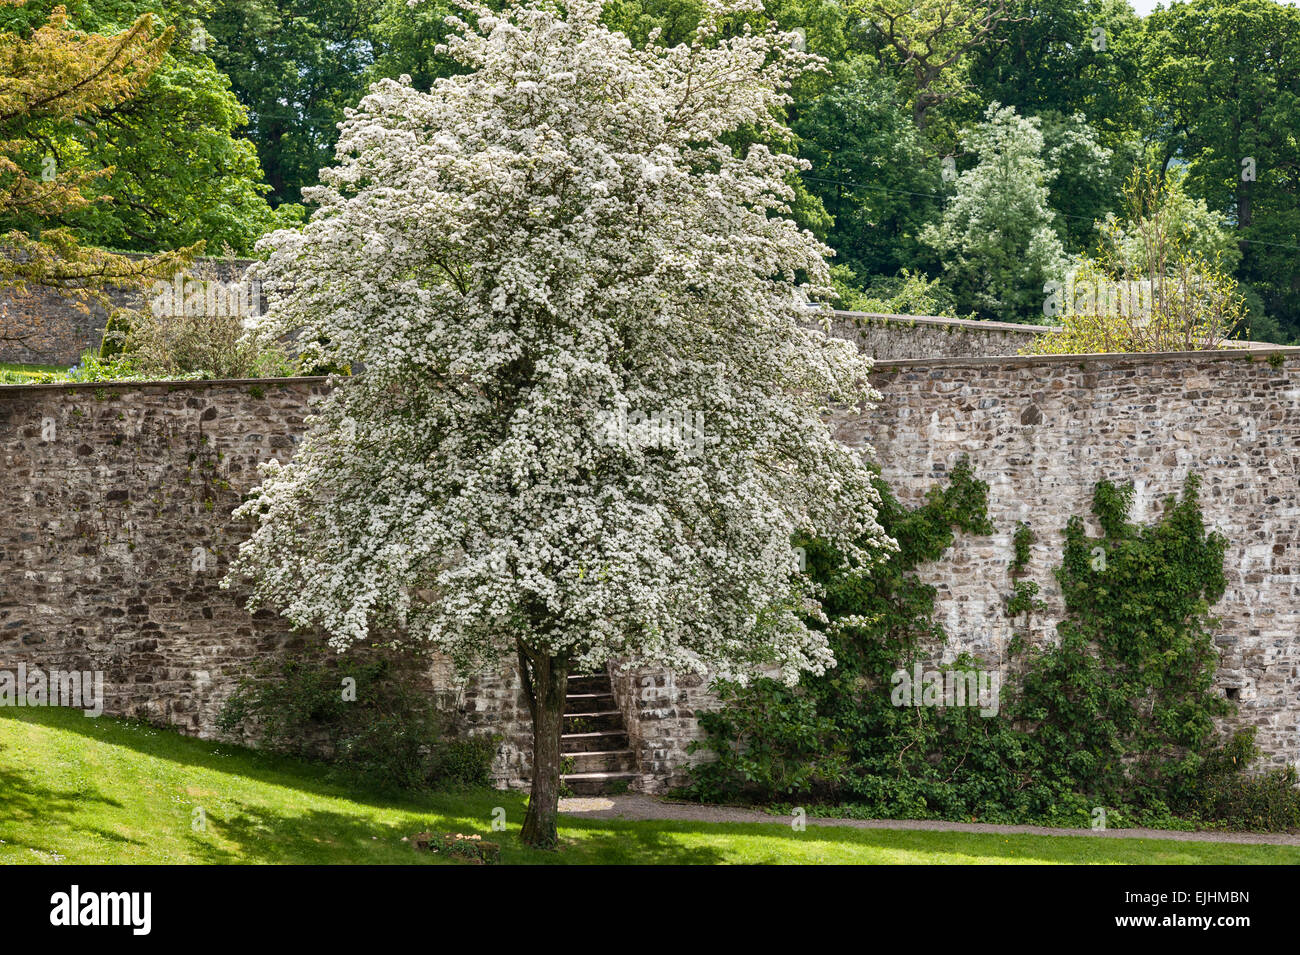 Aberglasney House and Gardens, Carmarthen, Wales, UK. A spectacular hawthorn tree in flower outside the Lower Walled - Stock Image